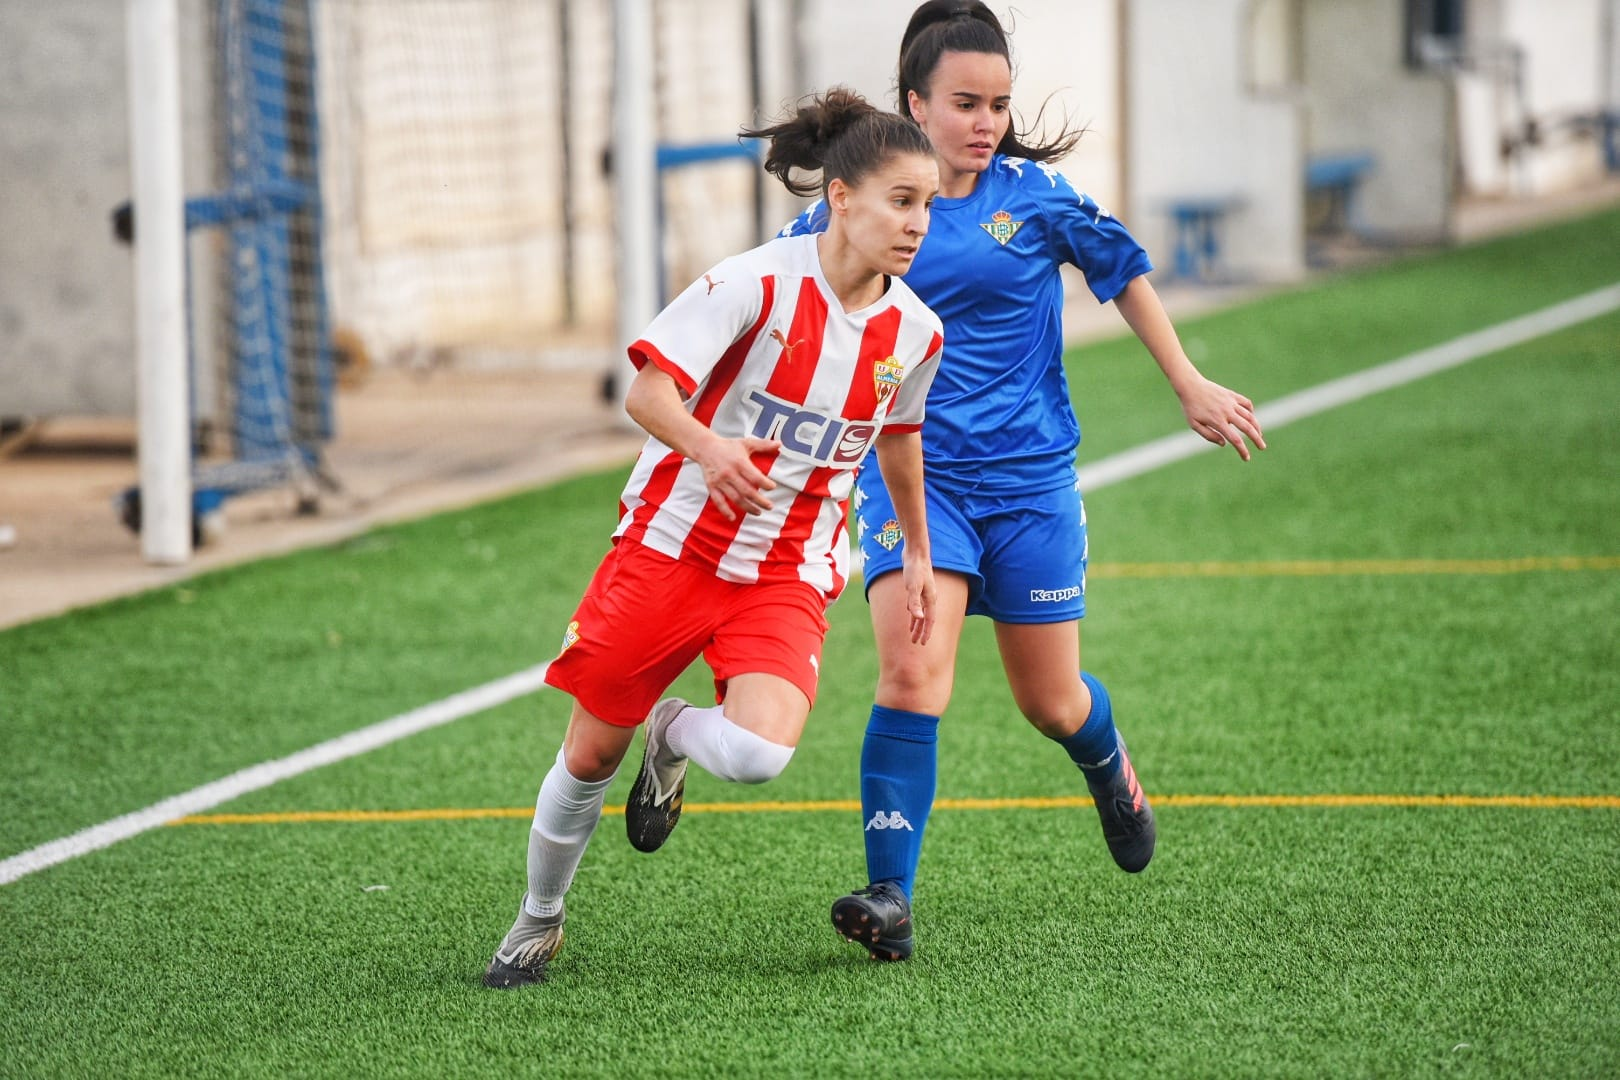 UDA femenina vs Real Betis B 3